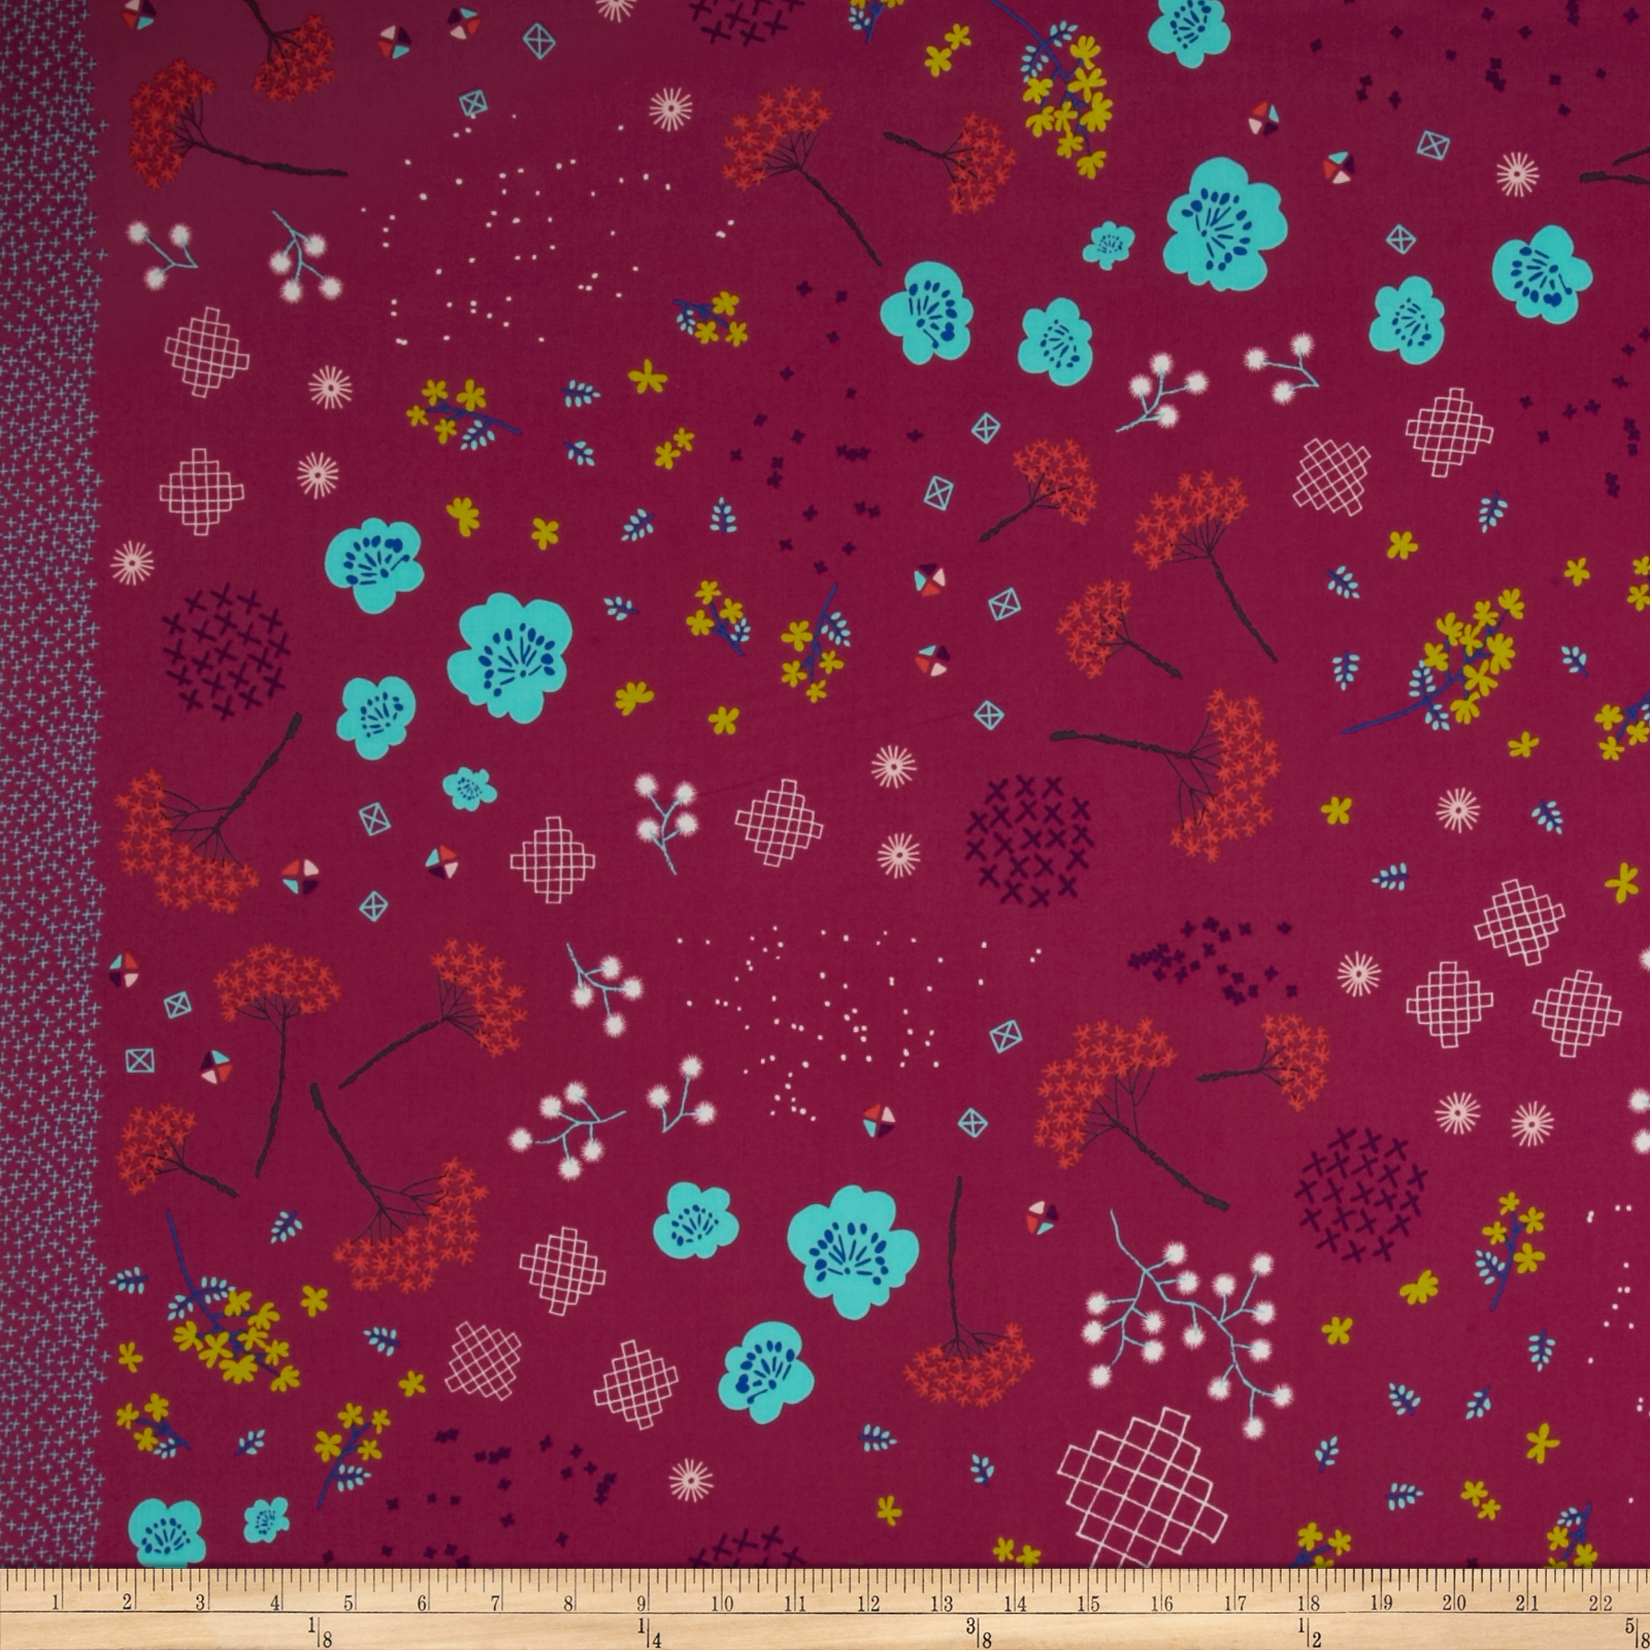 Cotton + Steel Mochi Lawn Mochi Floral Pink Fabric by Cotton & Steel in USA